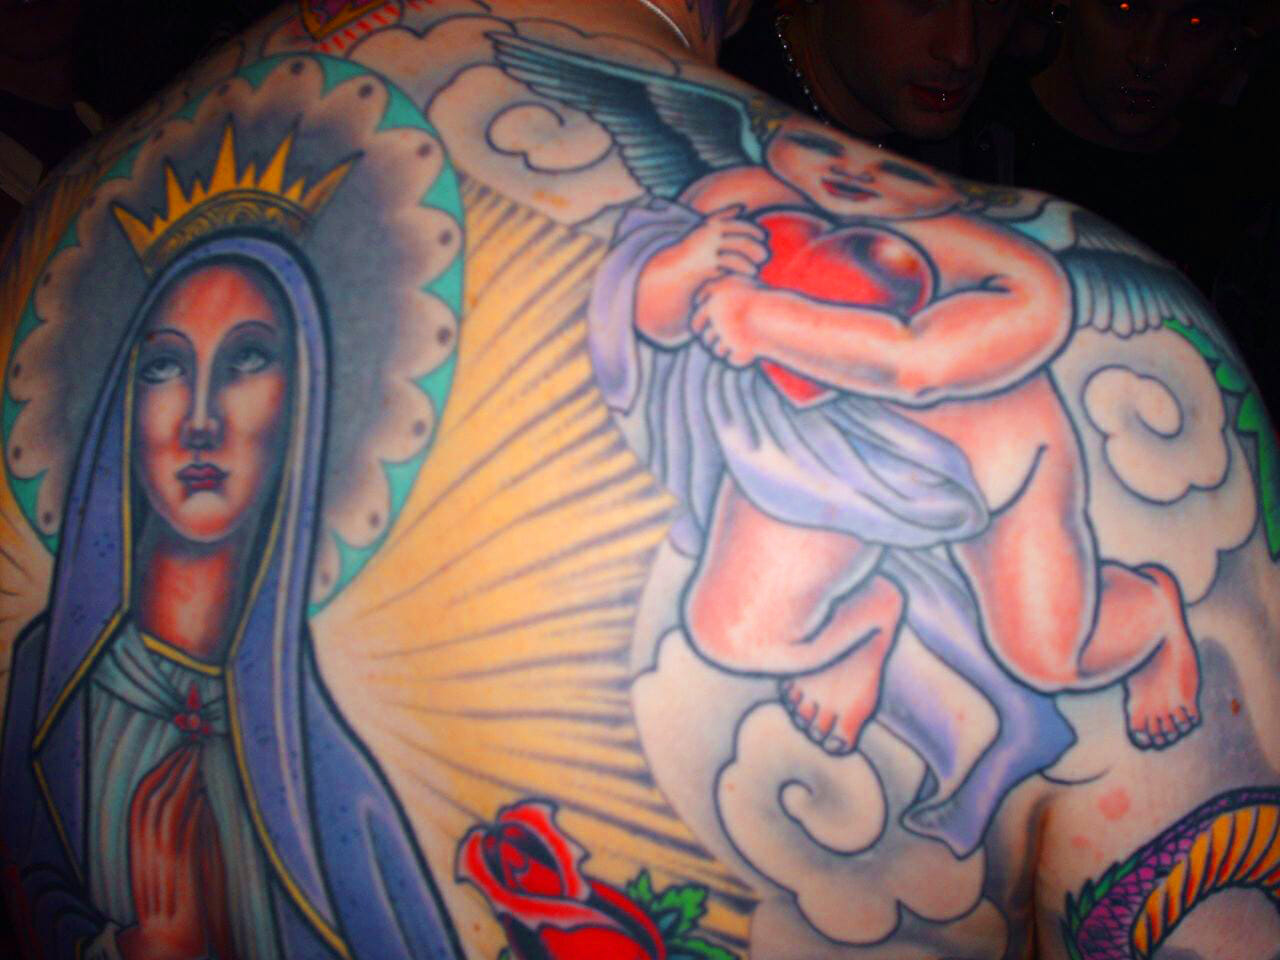 Tattoos and Christianity